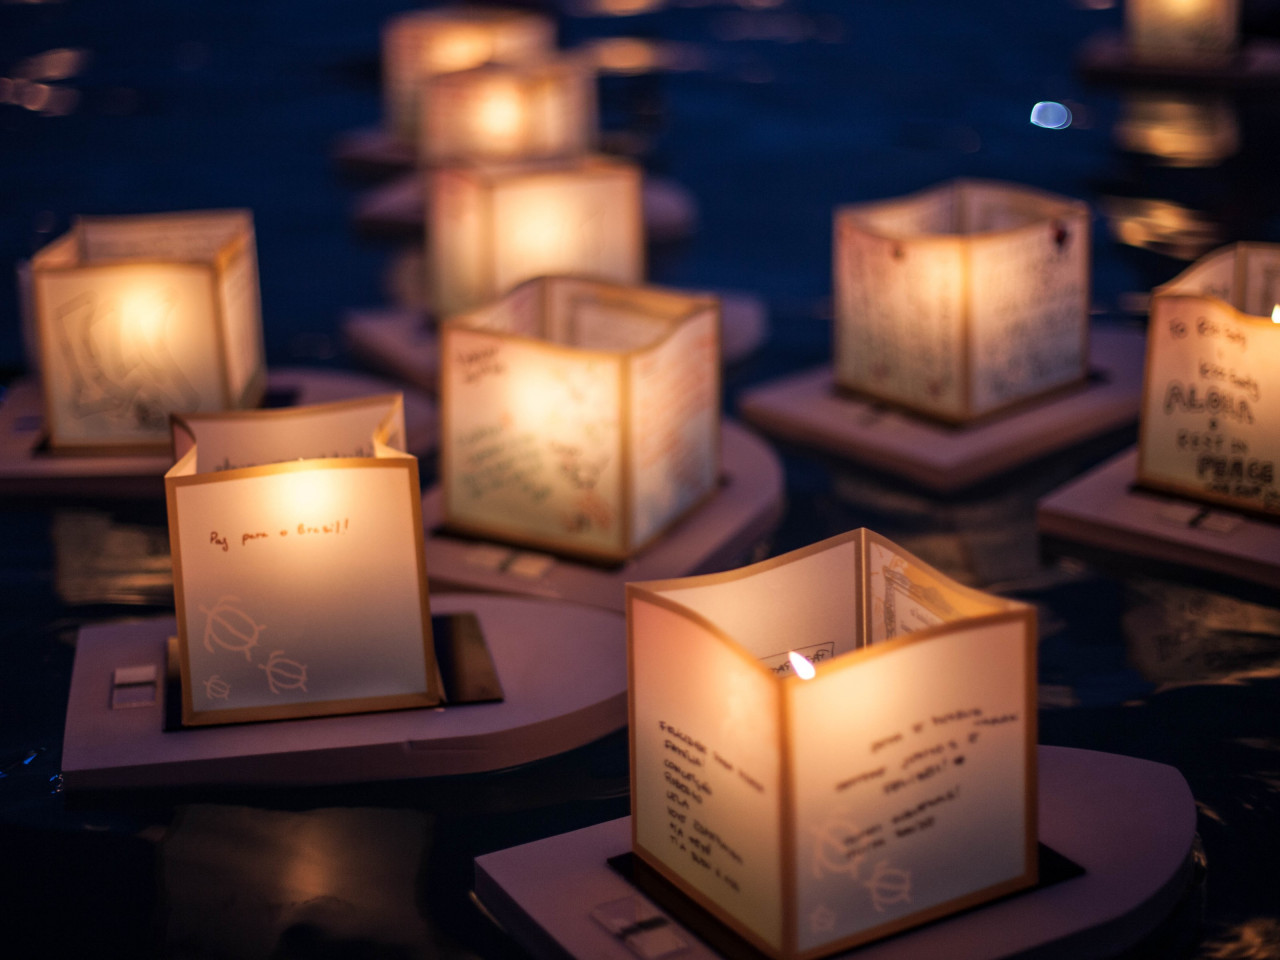 The Lantern Floating Ceremony wallpaper 1280x960